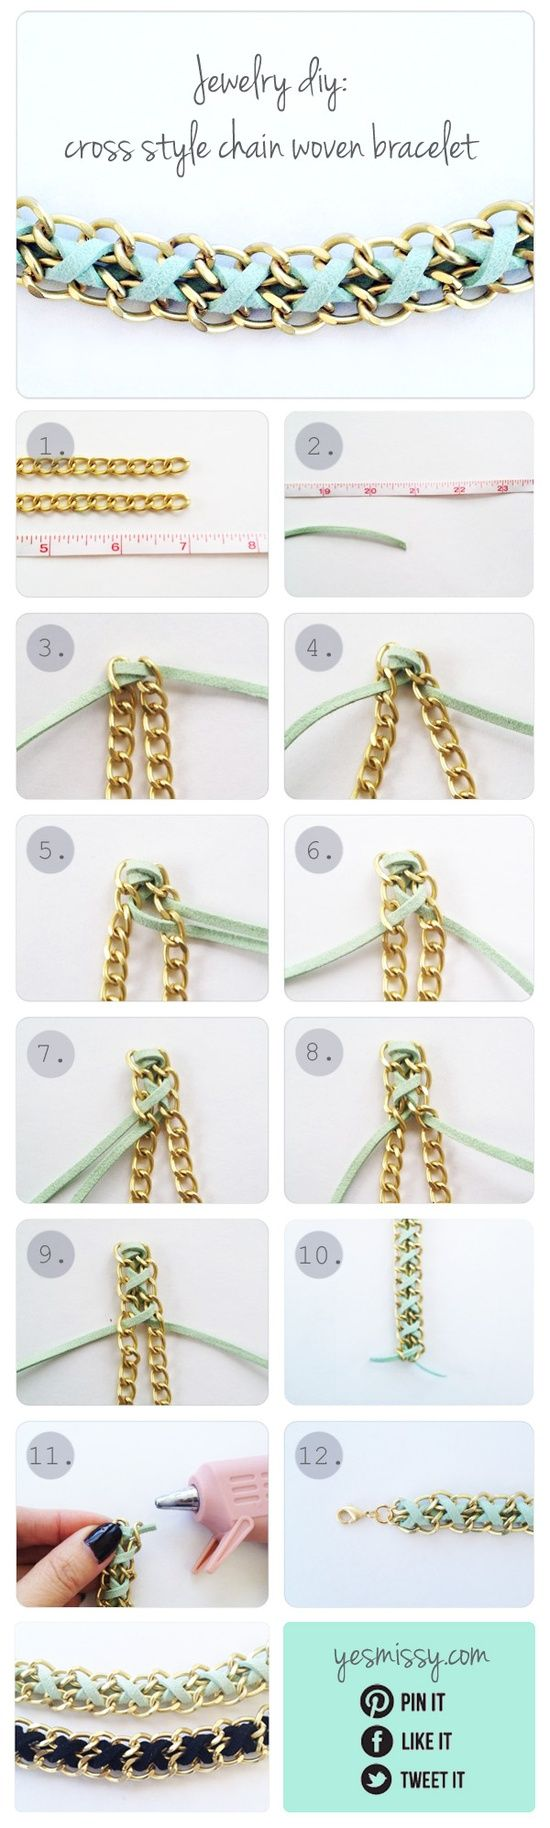 DIY Bracelet: Cross Style Chain Woven Bracelet,supply all kinds of cheap fashion bracelets,vintage bracelets at www.cost21.com